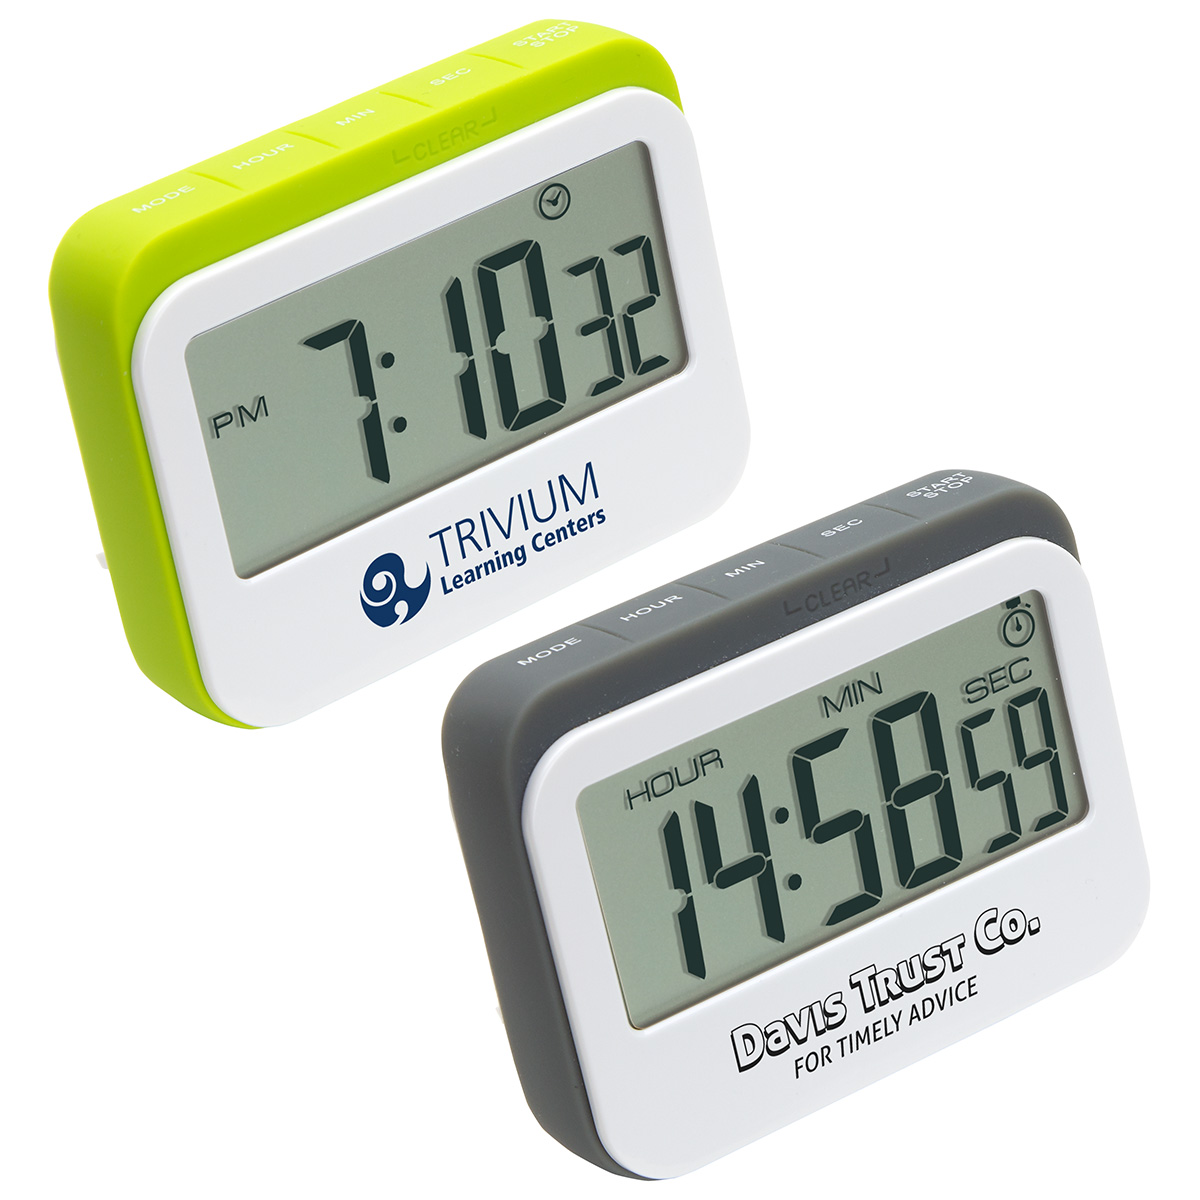 Soft Touch Widescreen Kitchen Timer/Clock, WKA-KT16 - 1 Colour Imprint